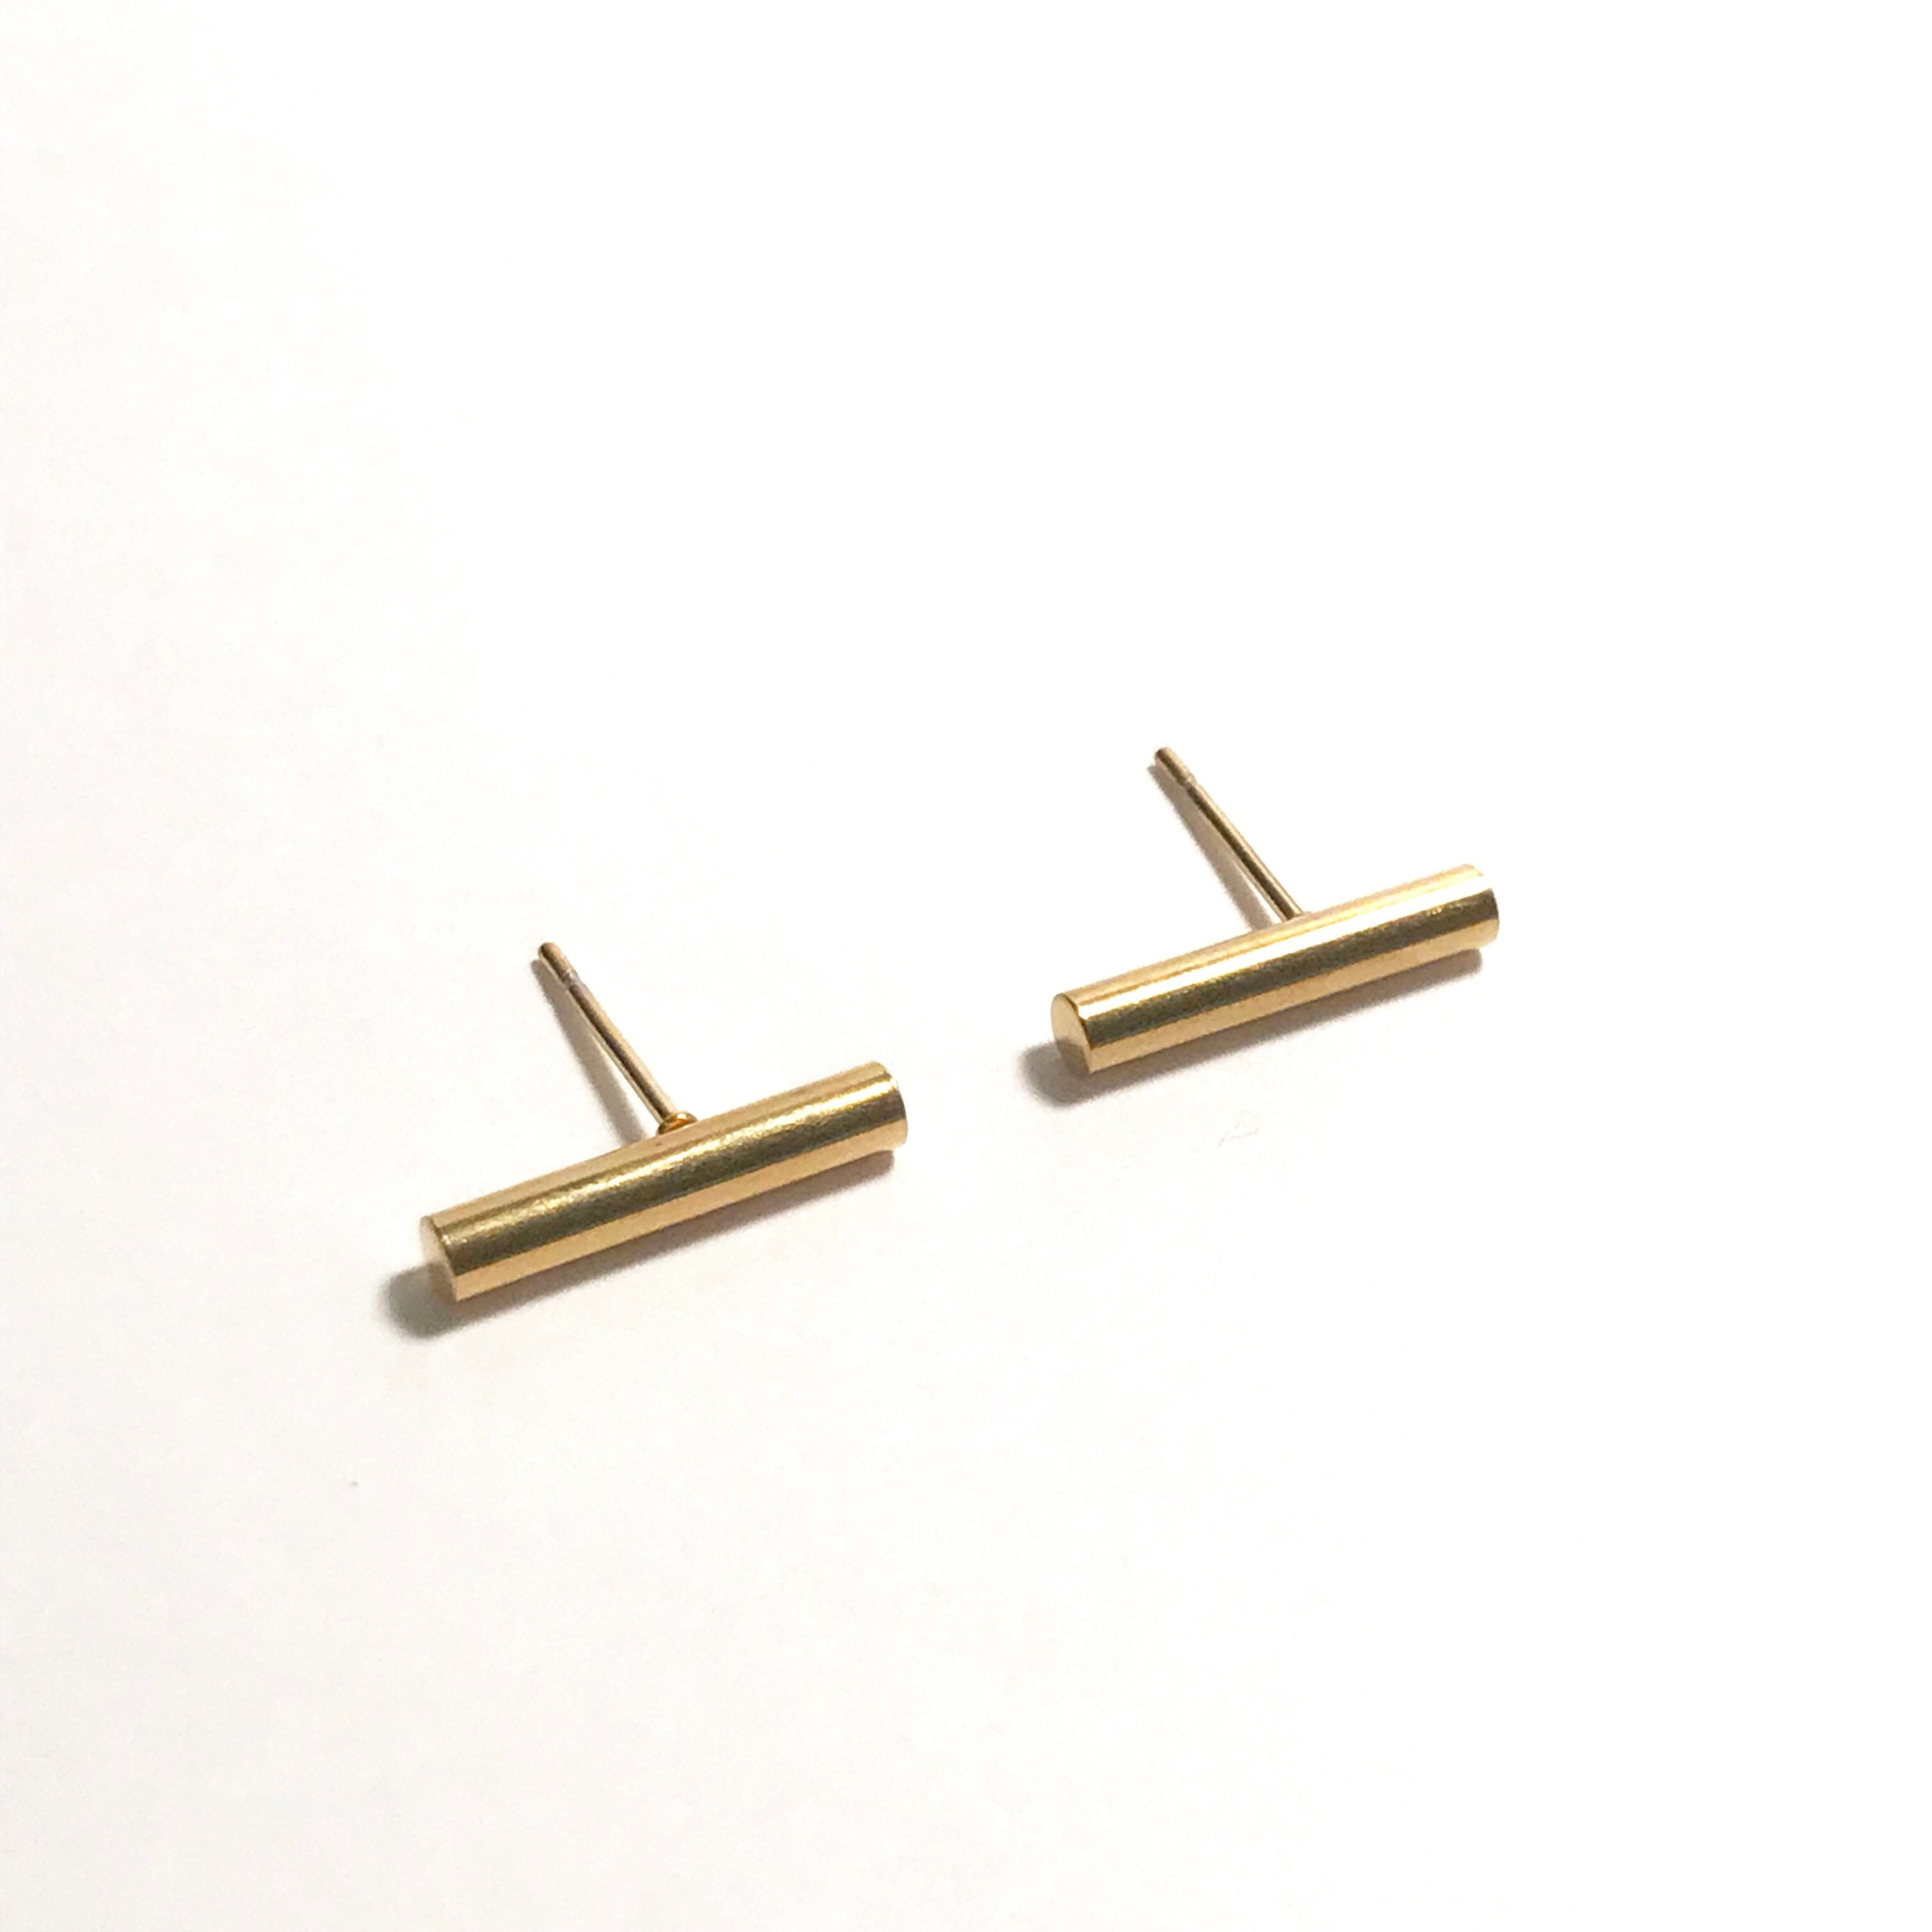 for bar minimalist post gold bended jewelry gift metalwork stud woman line filled pin earrings